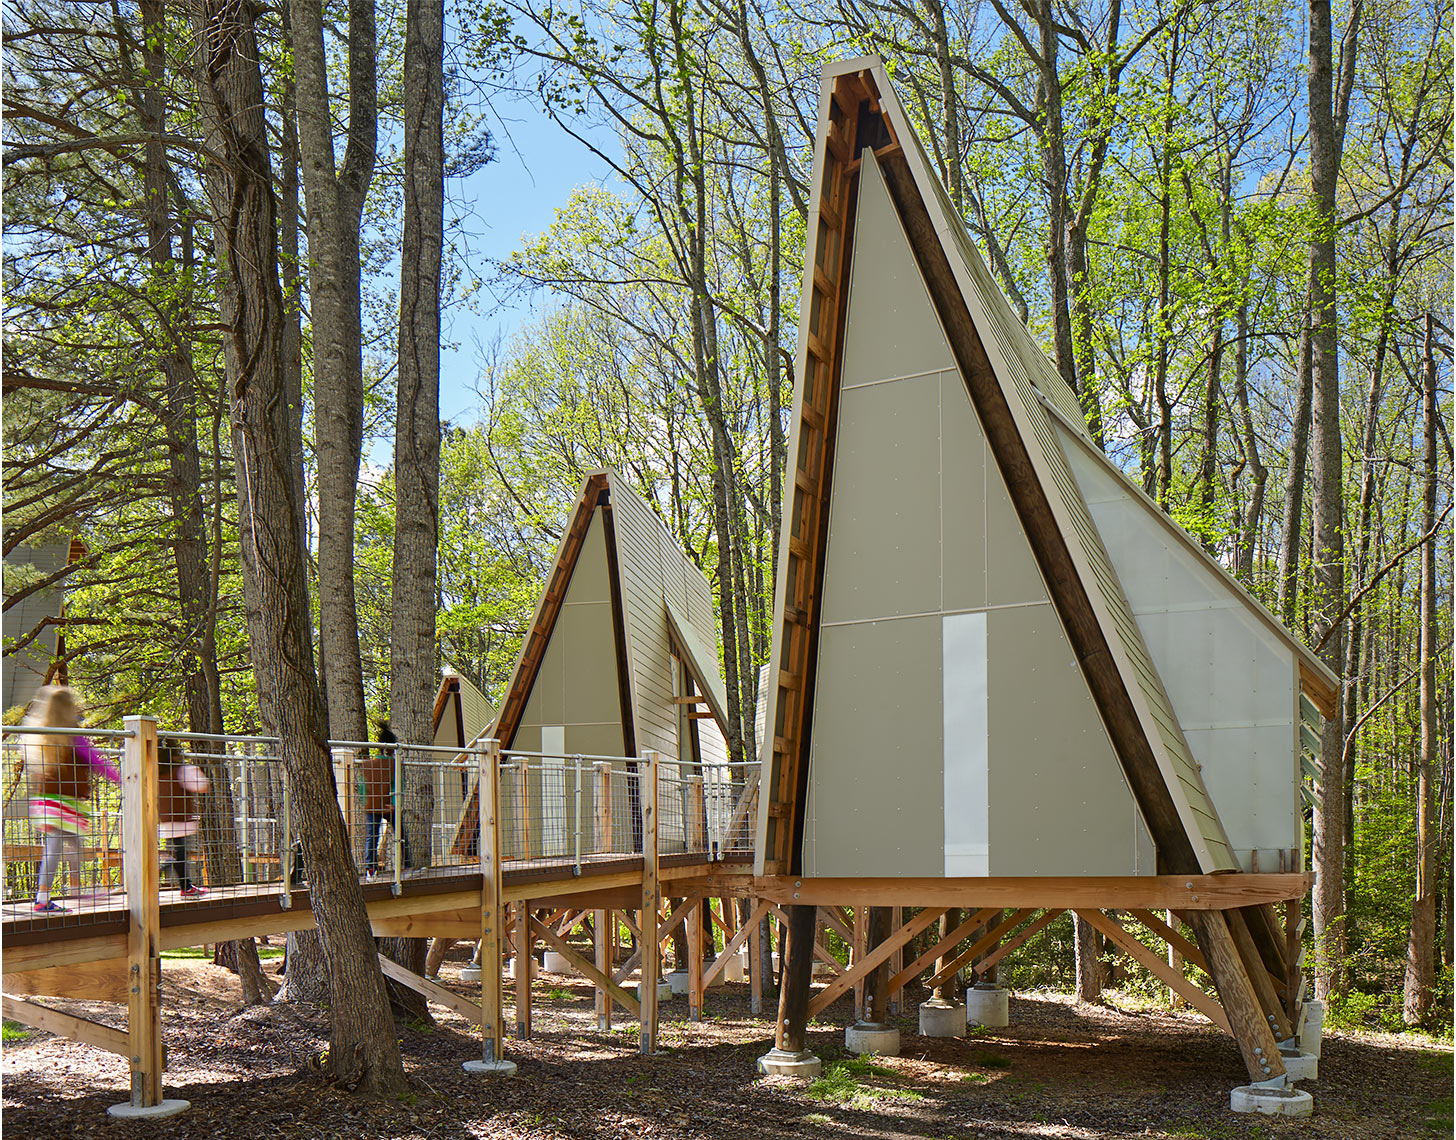 Camp-Graham-Cloverfield-Treehouses-3143